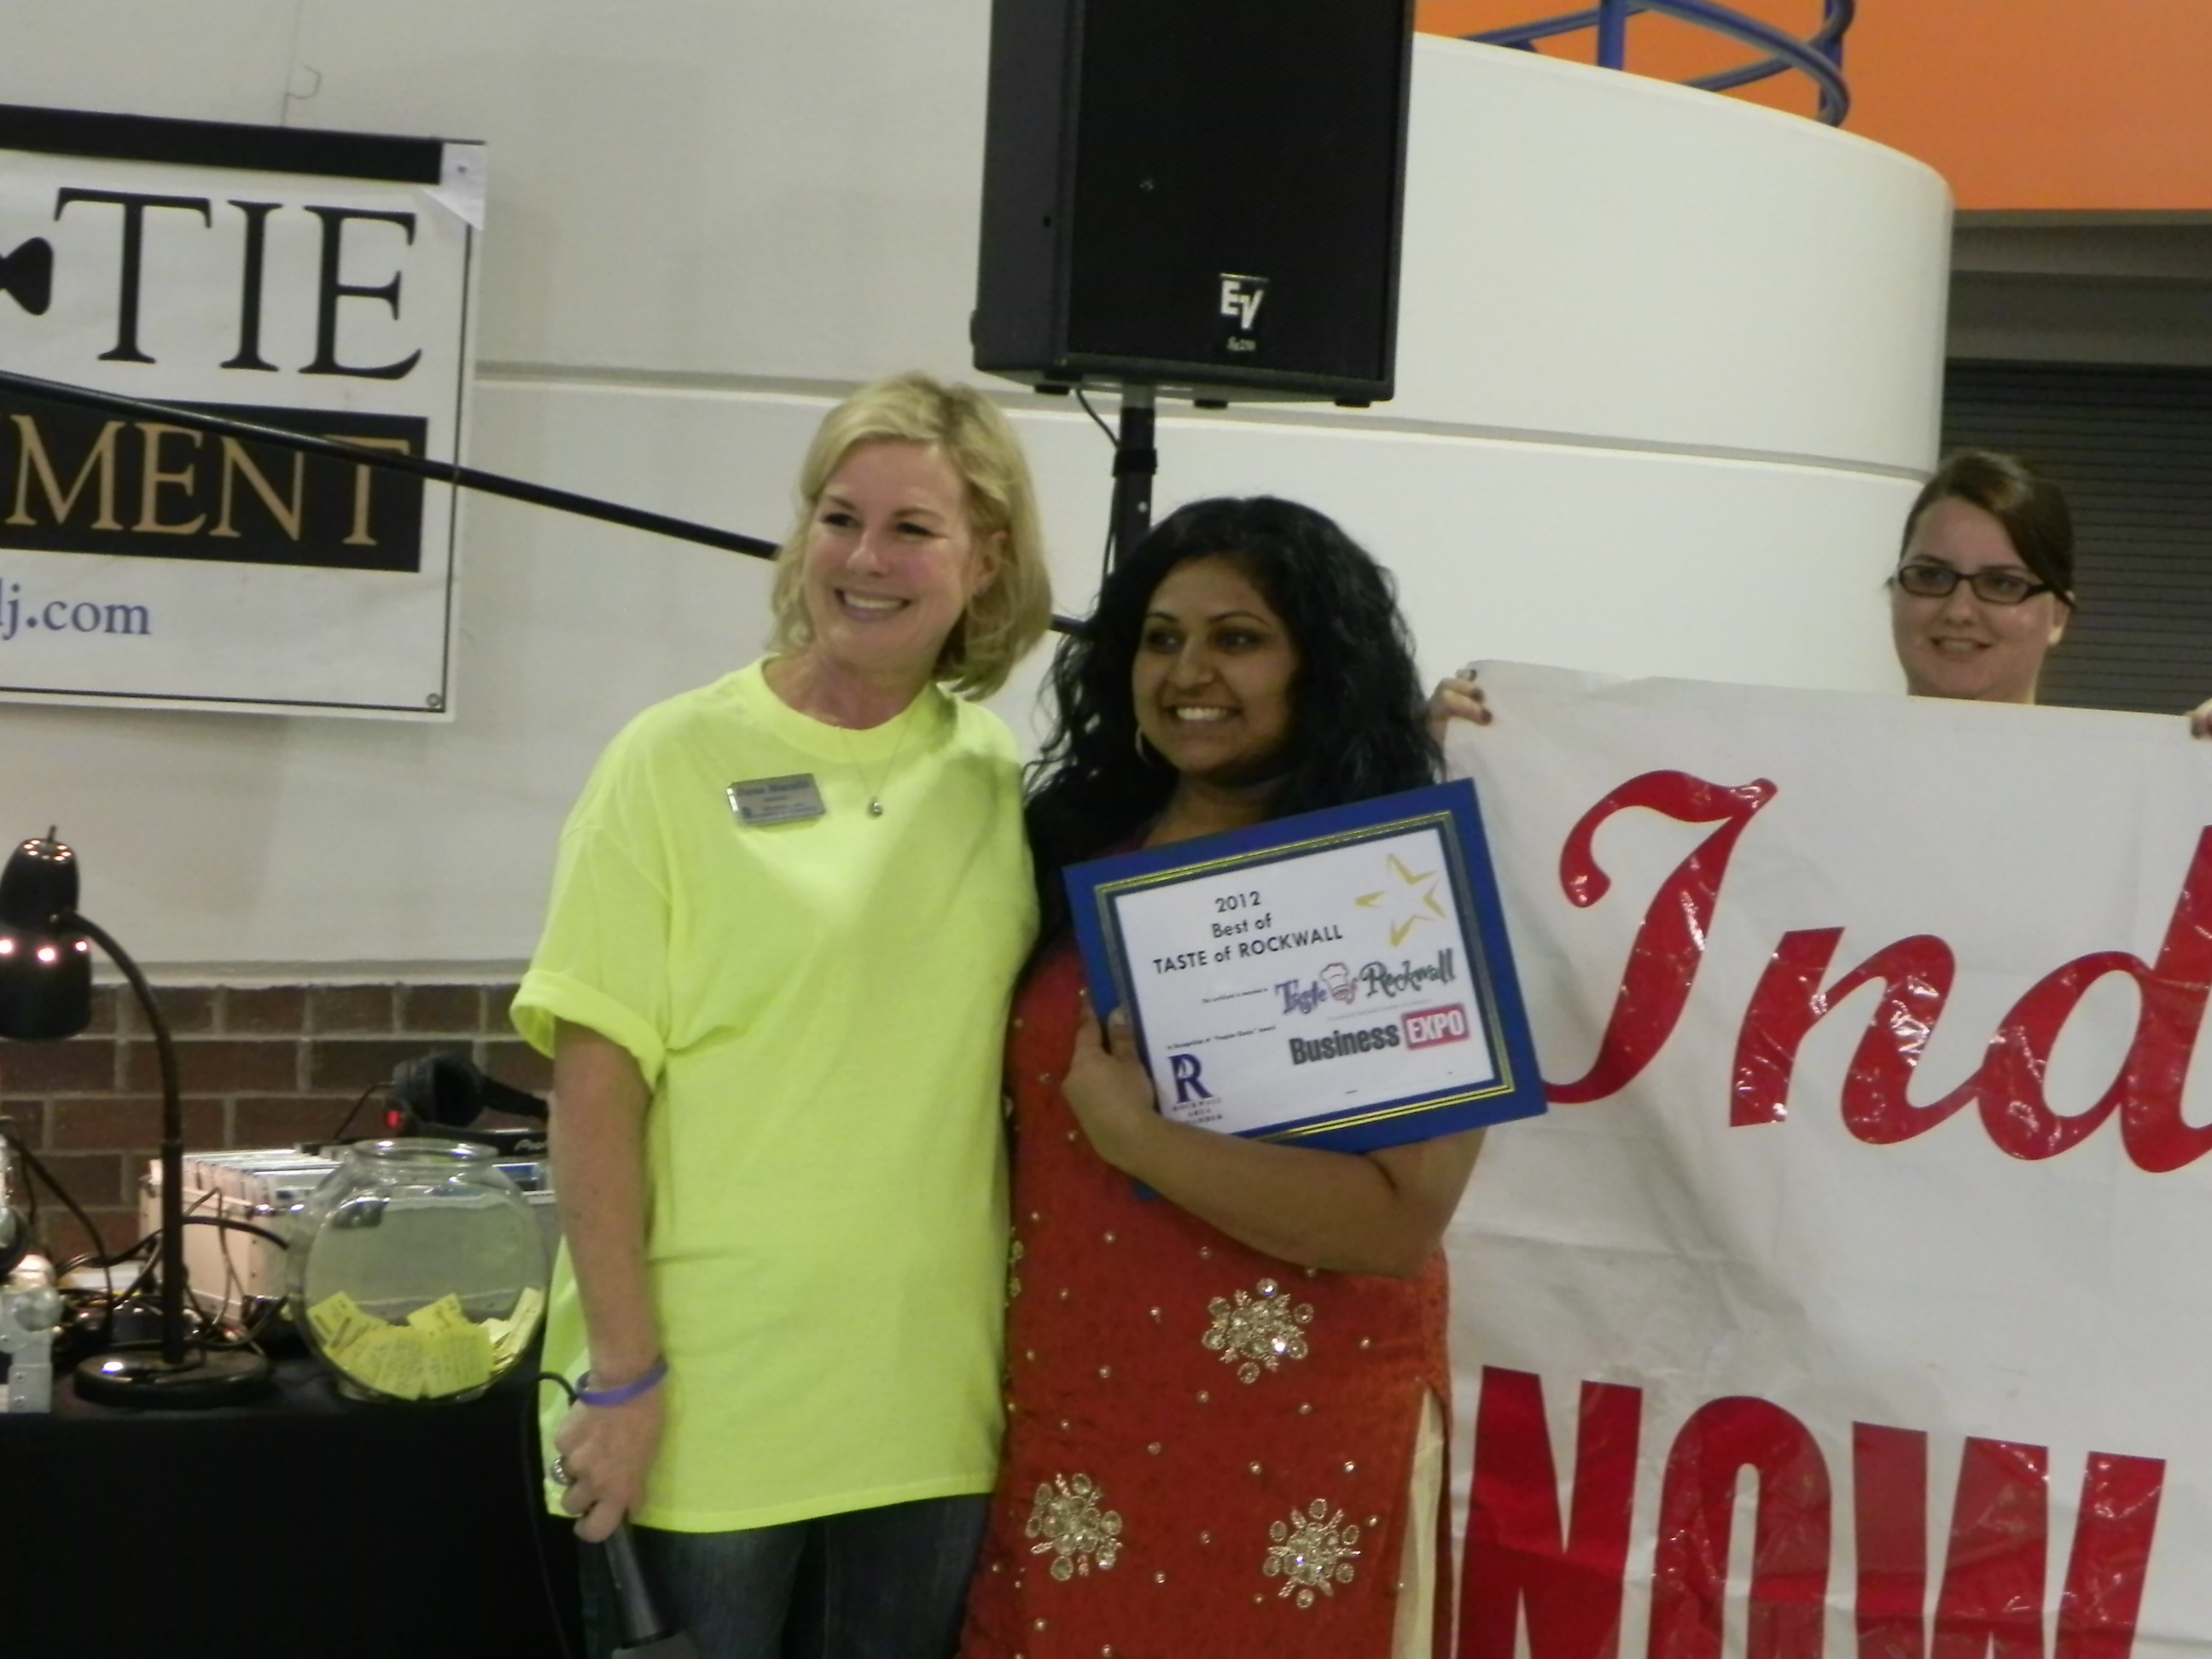 Taste of Rockwall, Business Expo a delicious success